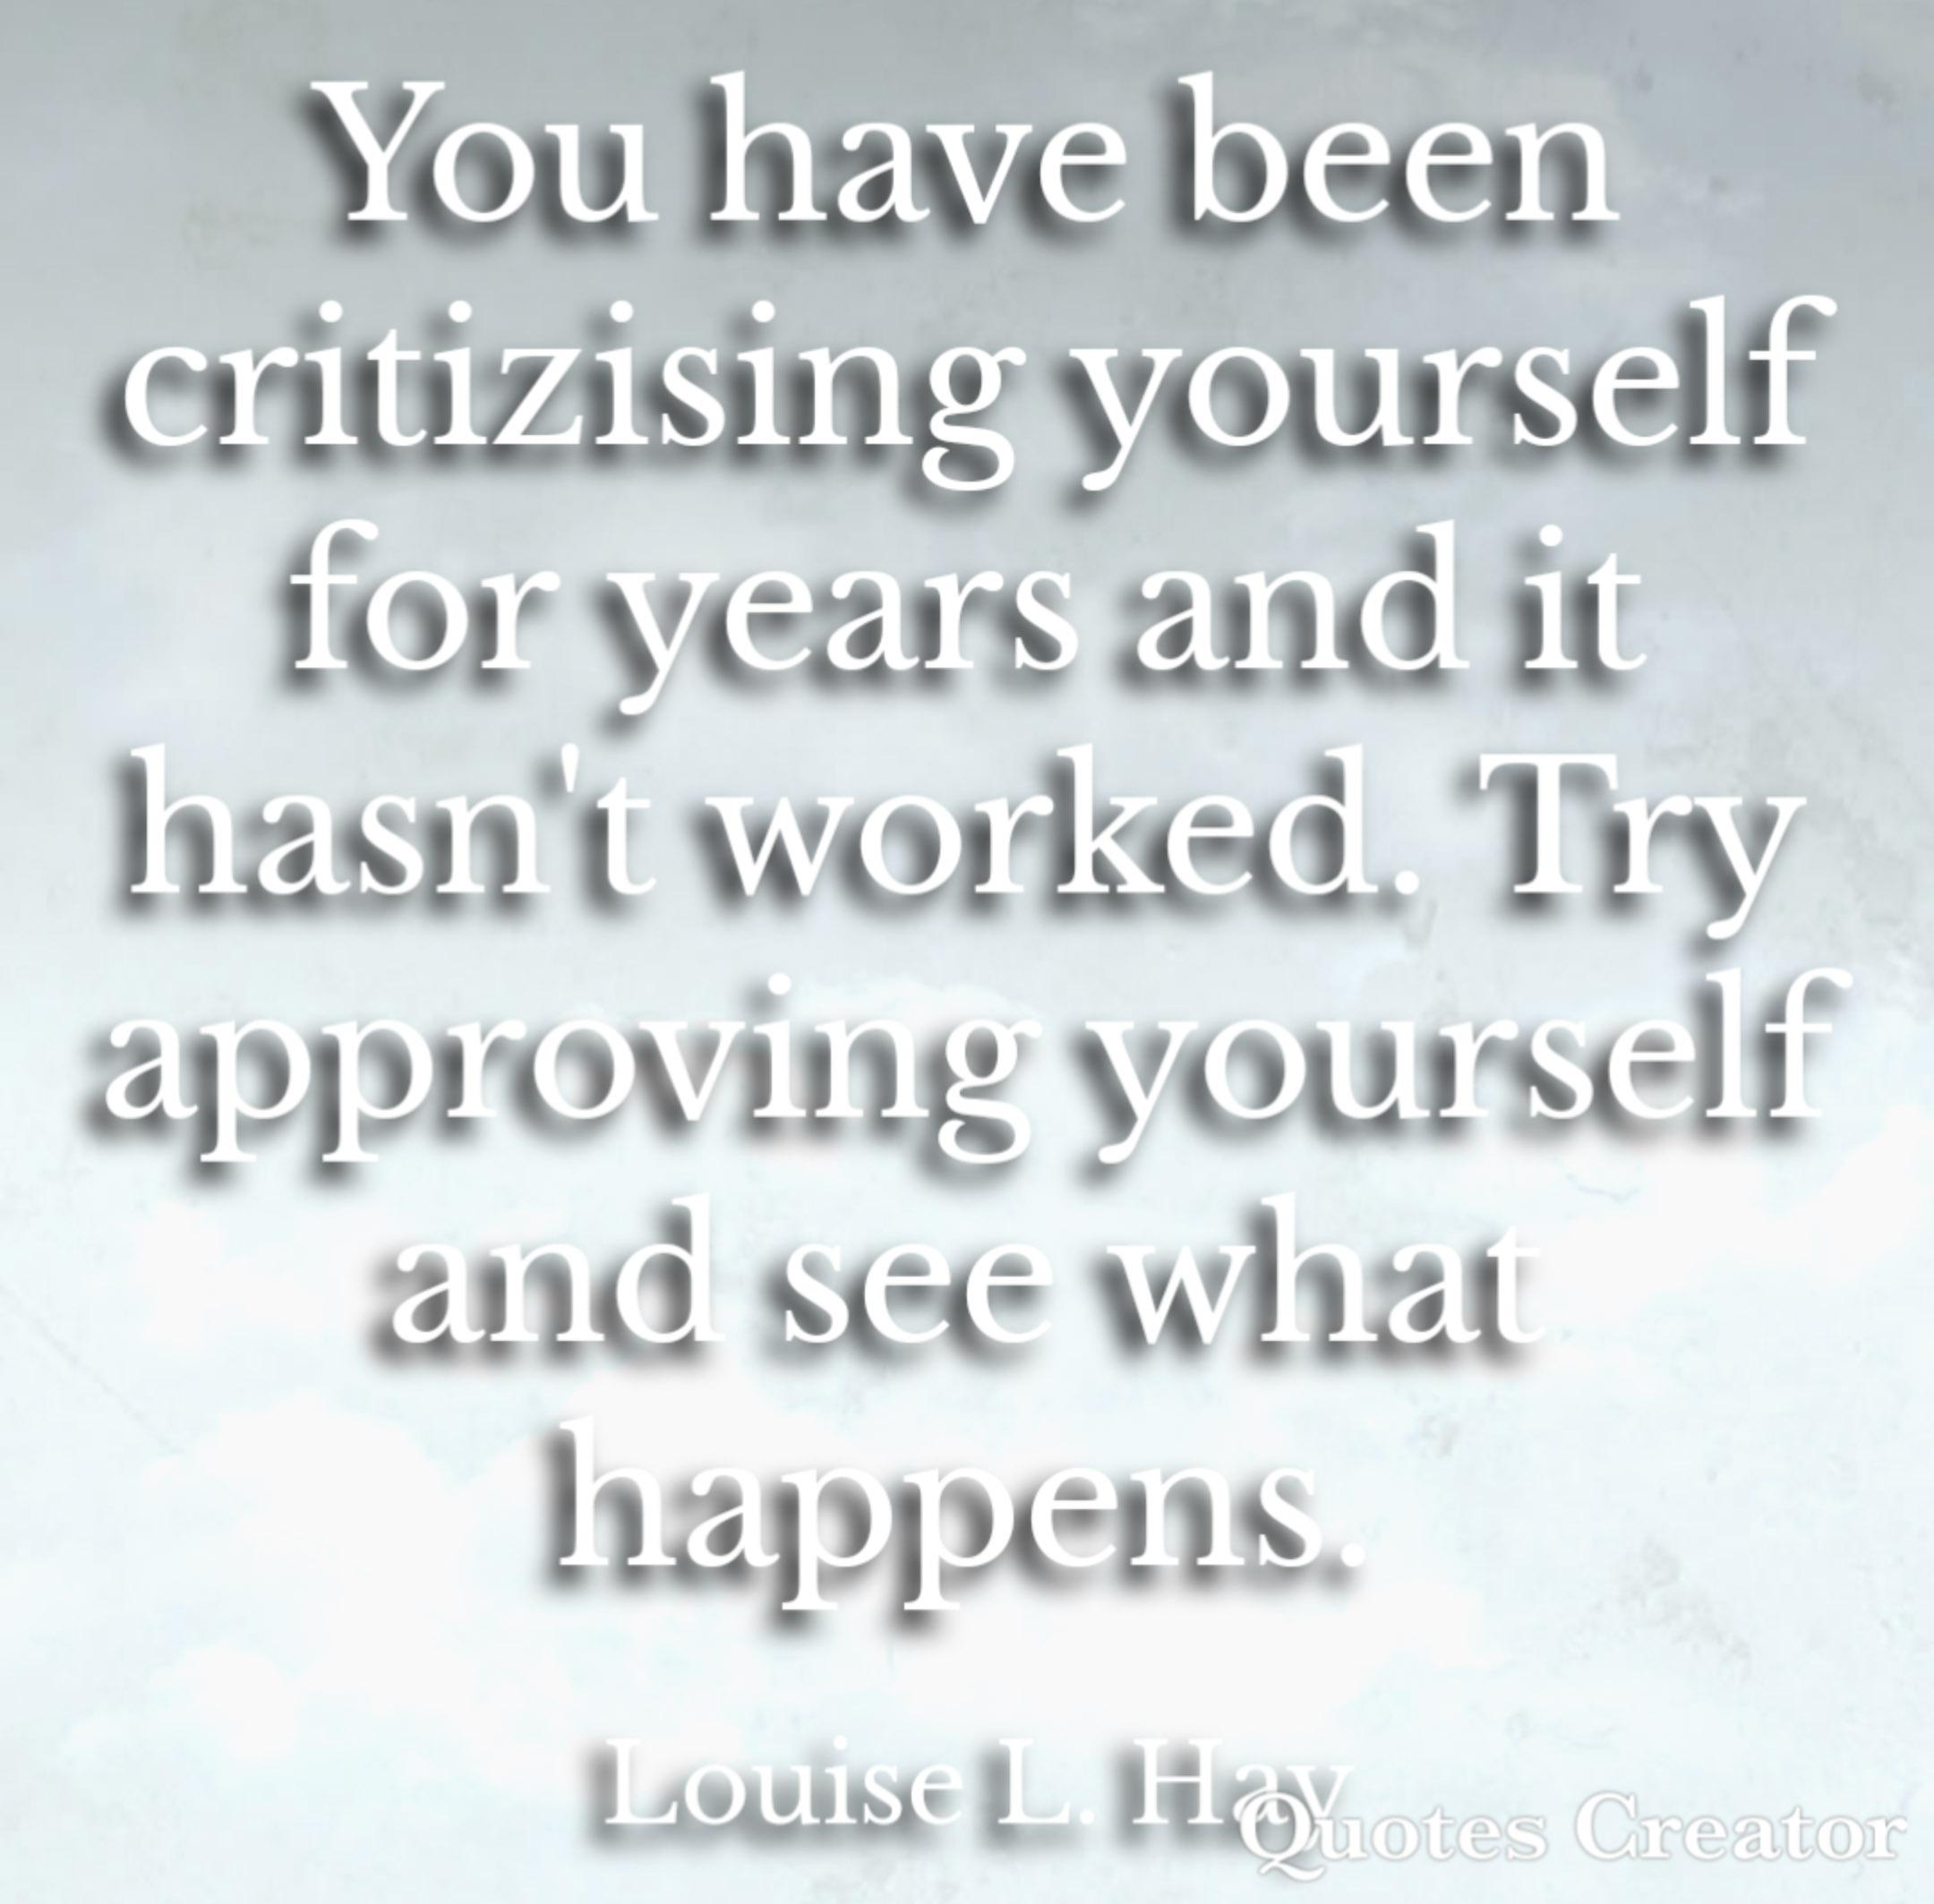 Try approving yourself by Louise L. Hay [2160×3480]